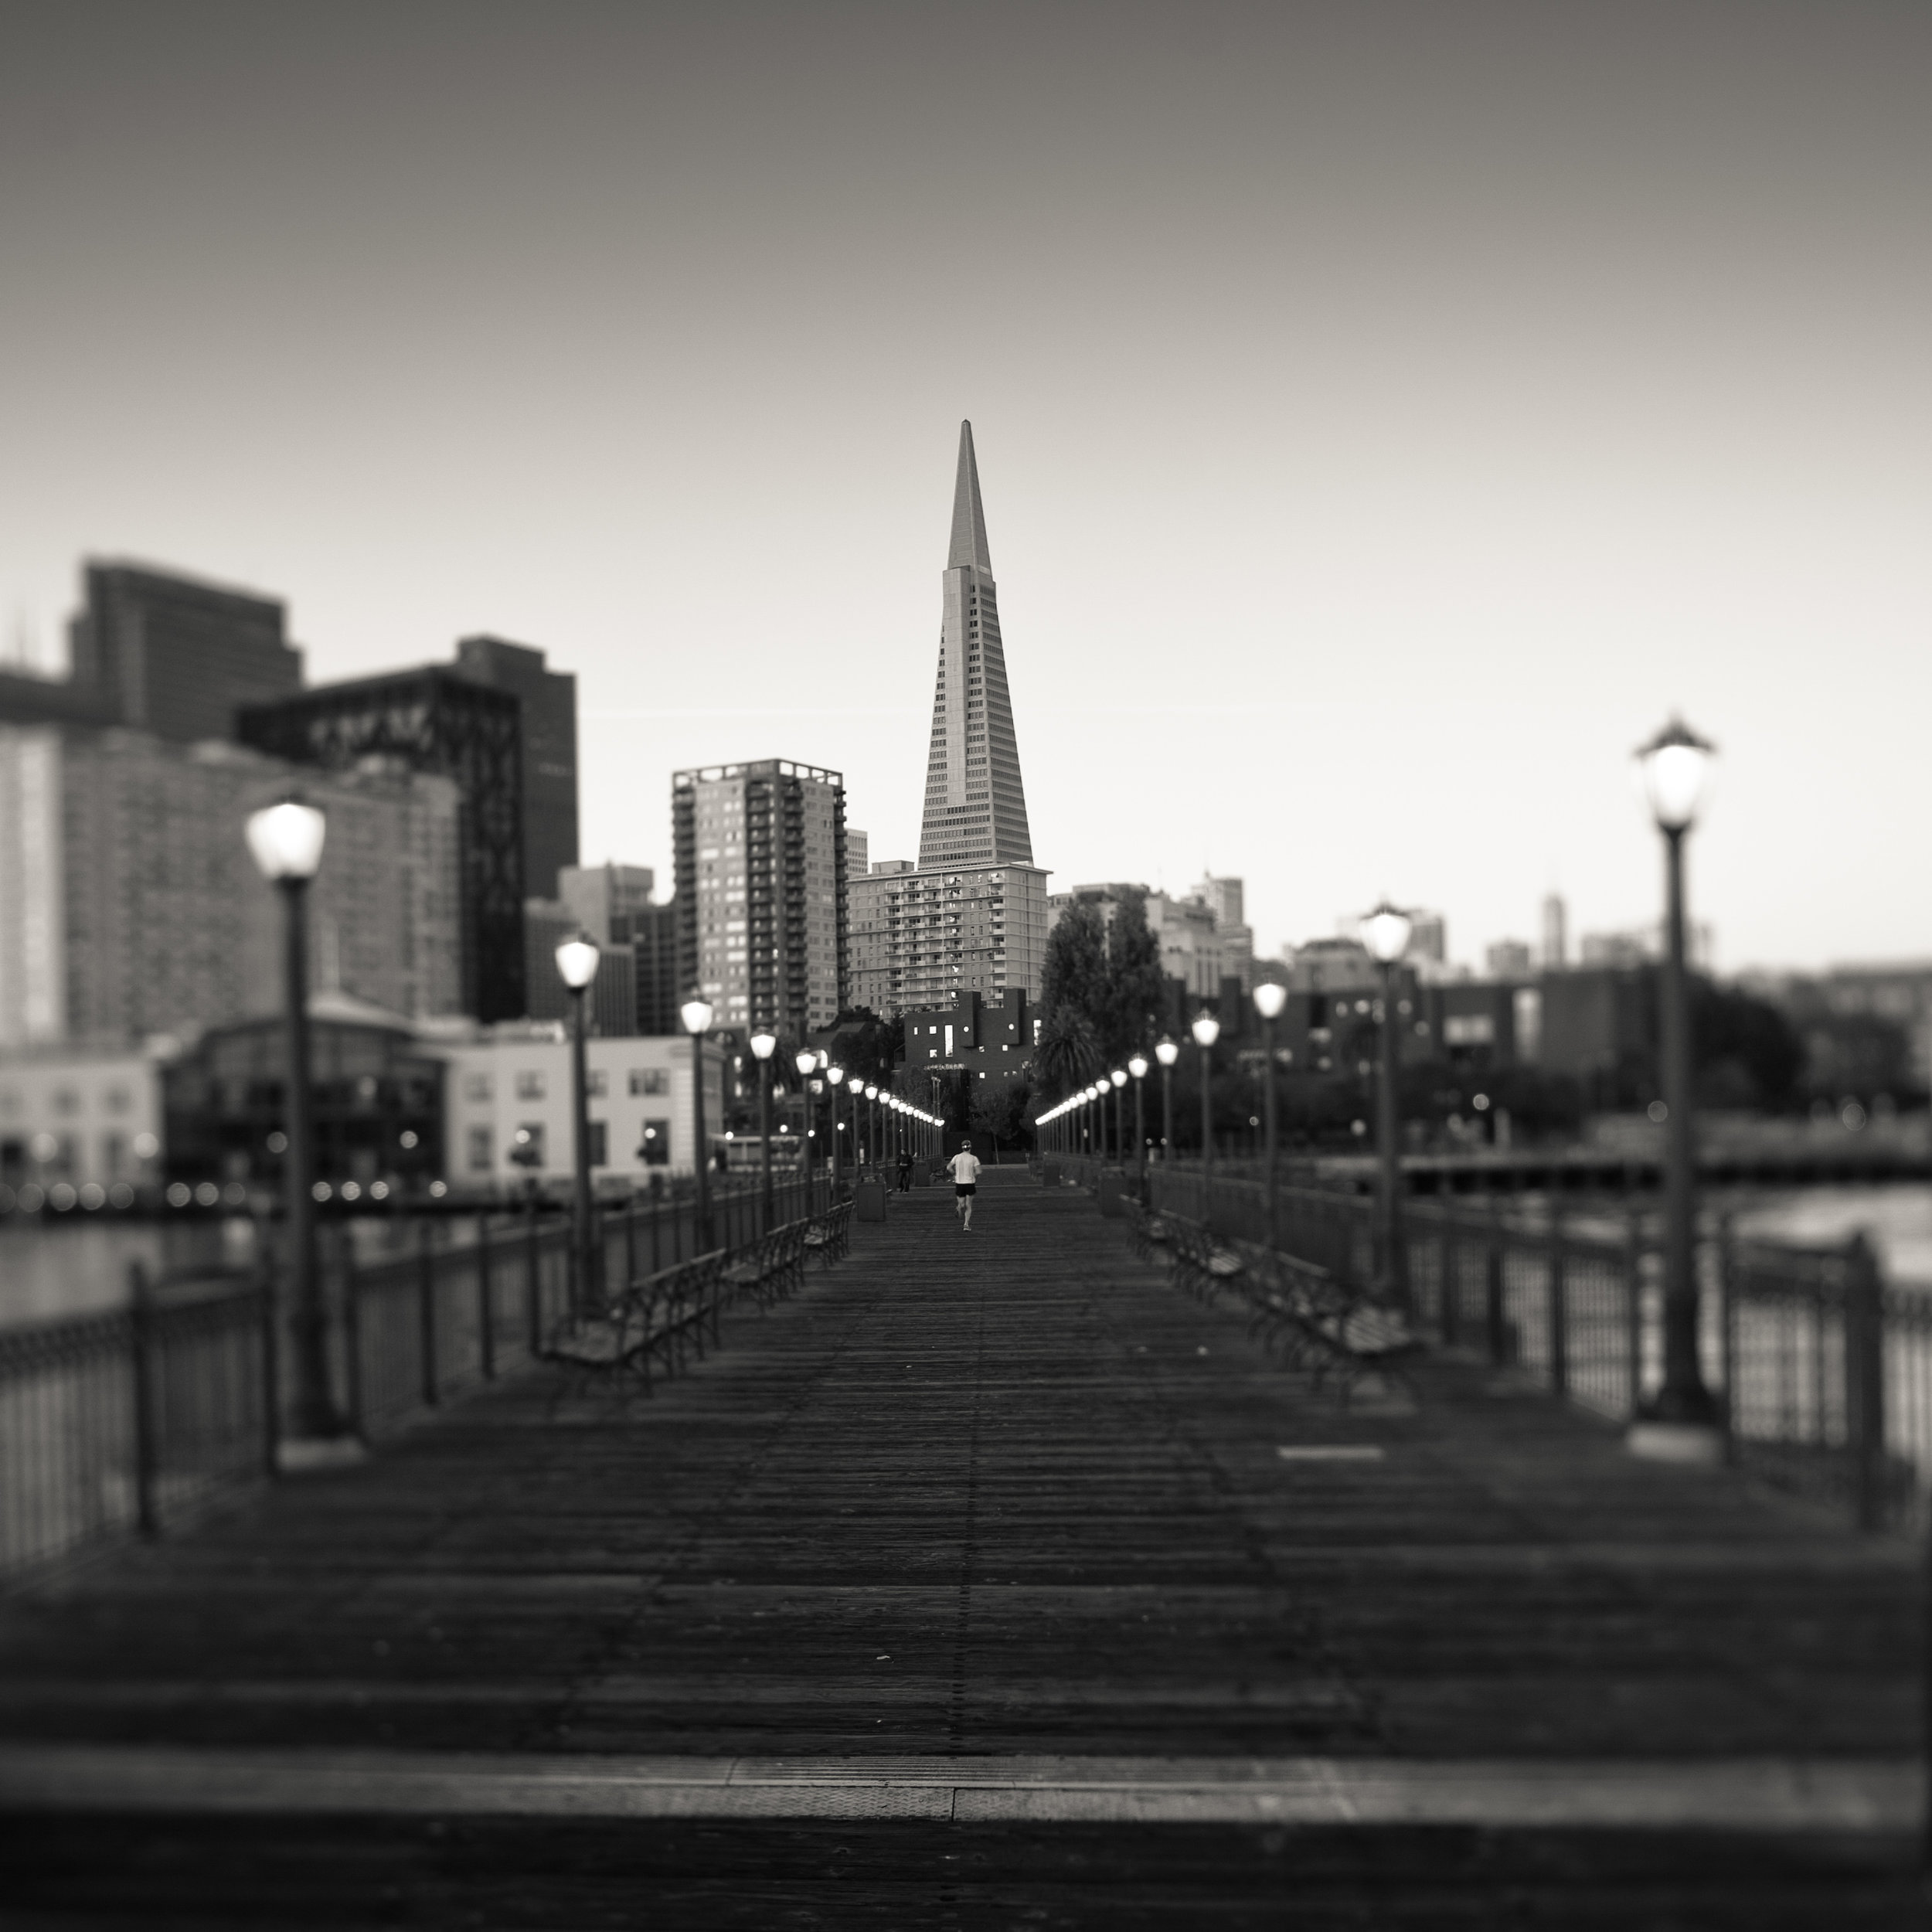 San Francisco embarcadero black white broadway pier transamerica pyramid runner starting line